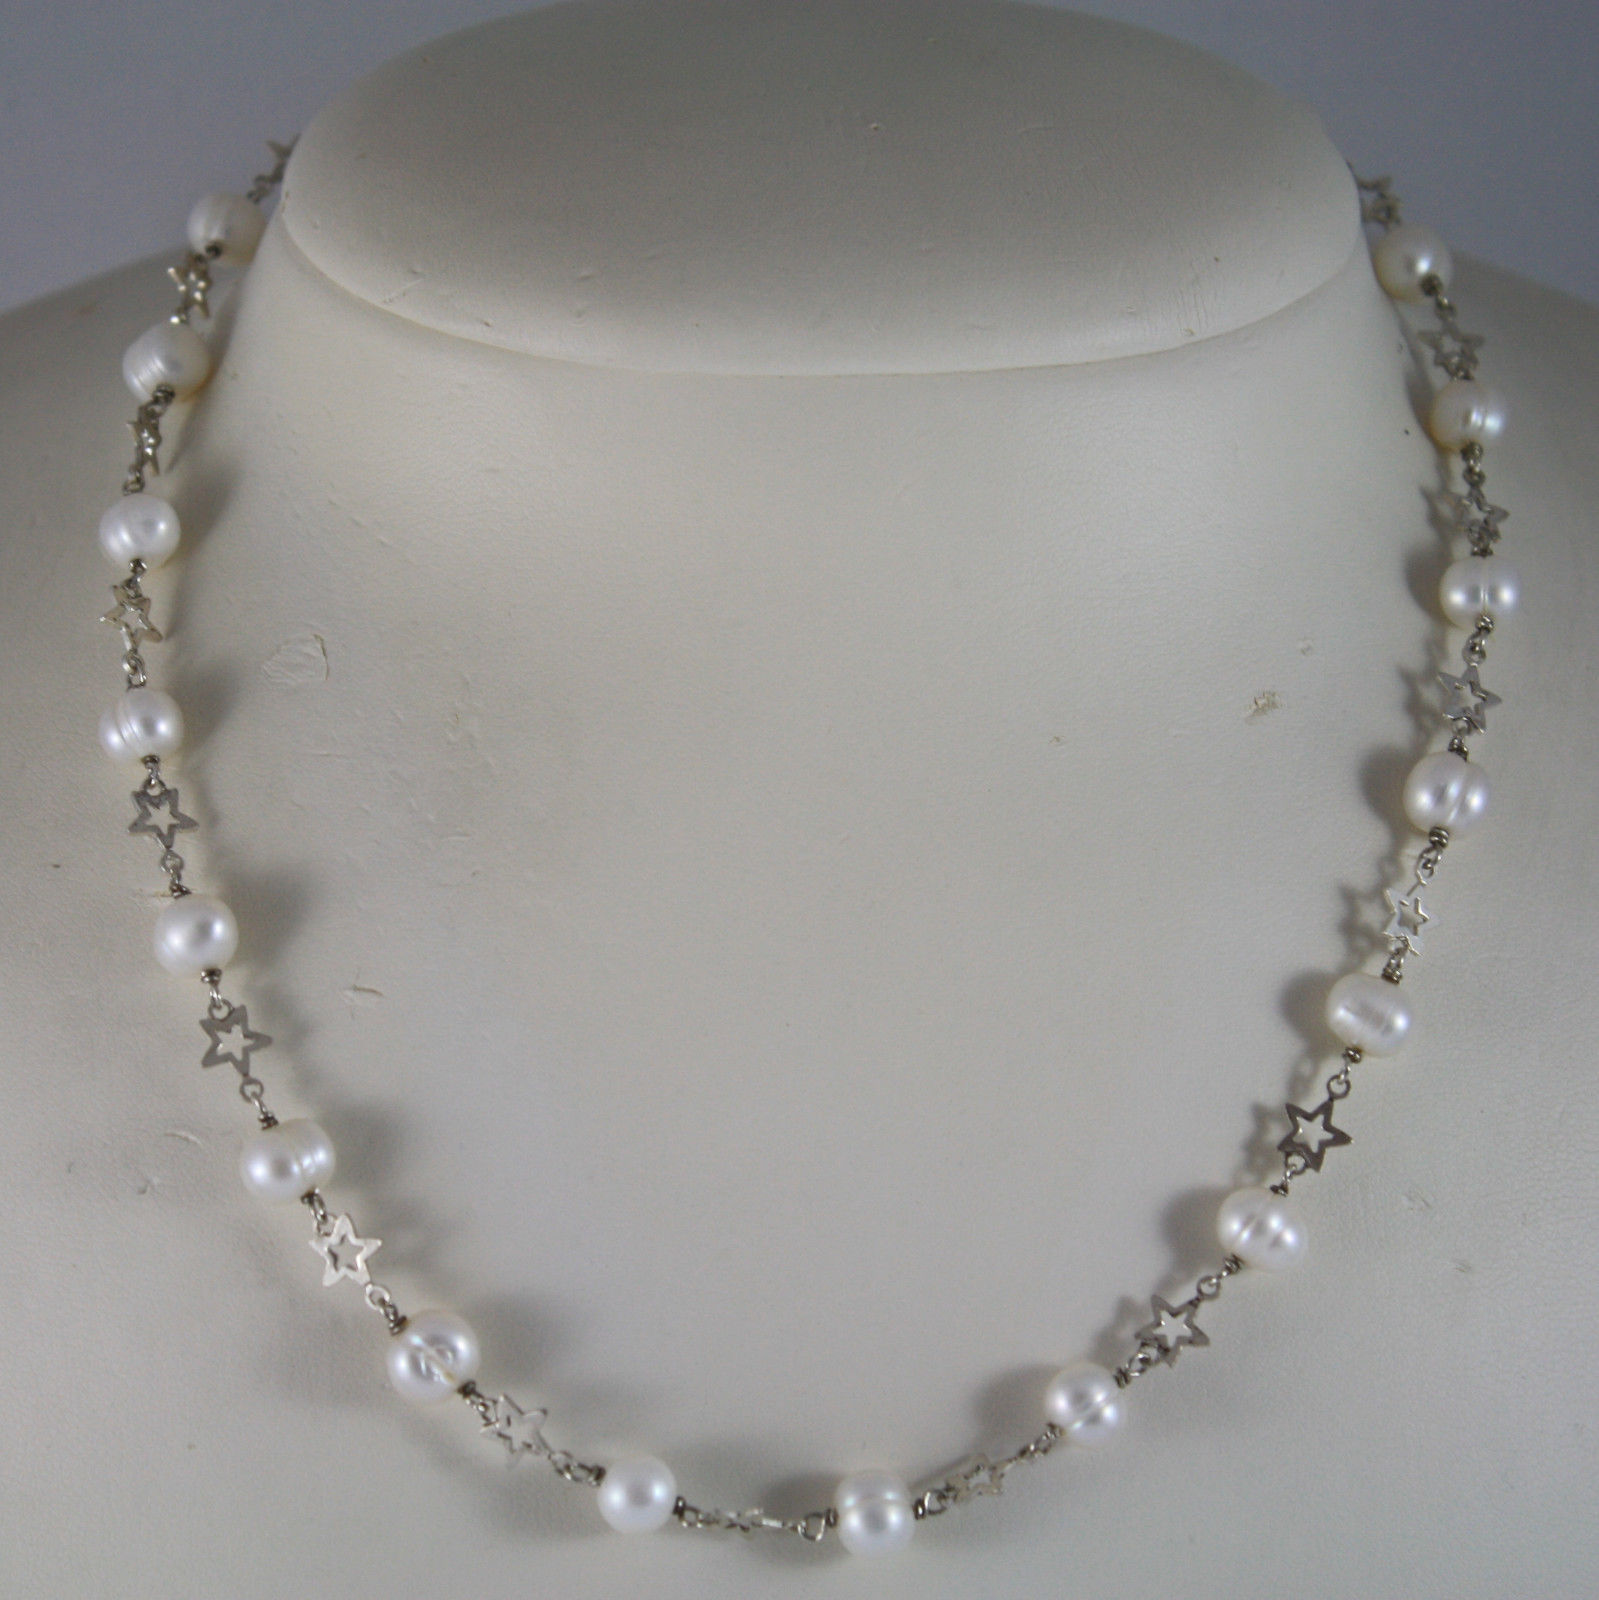 .925 RHODIUM SILVER NECKLACE WITH WHITE FRESHWATER PEARLS AND STARS